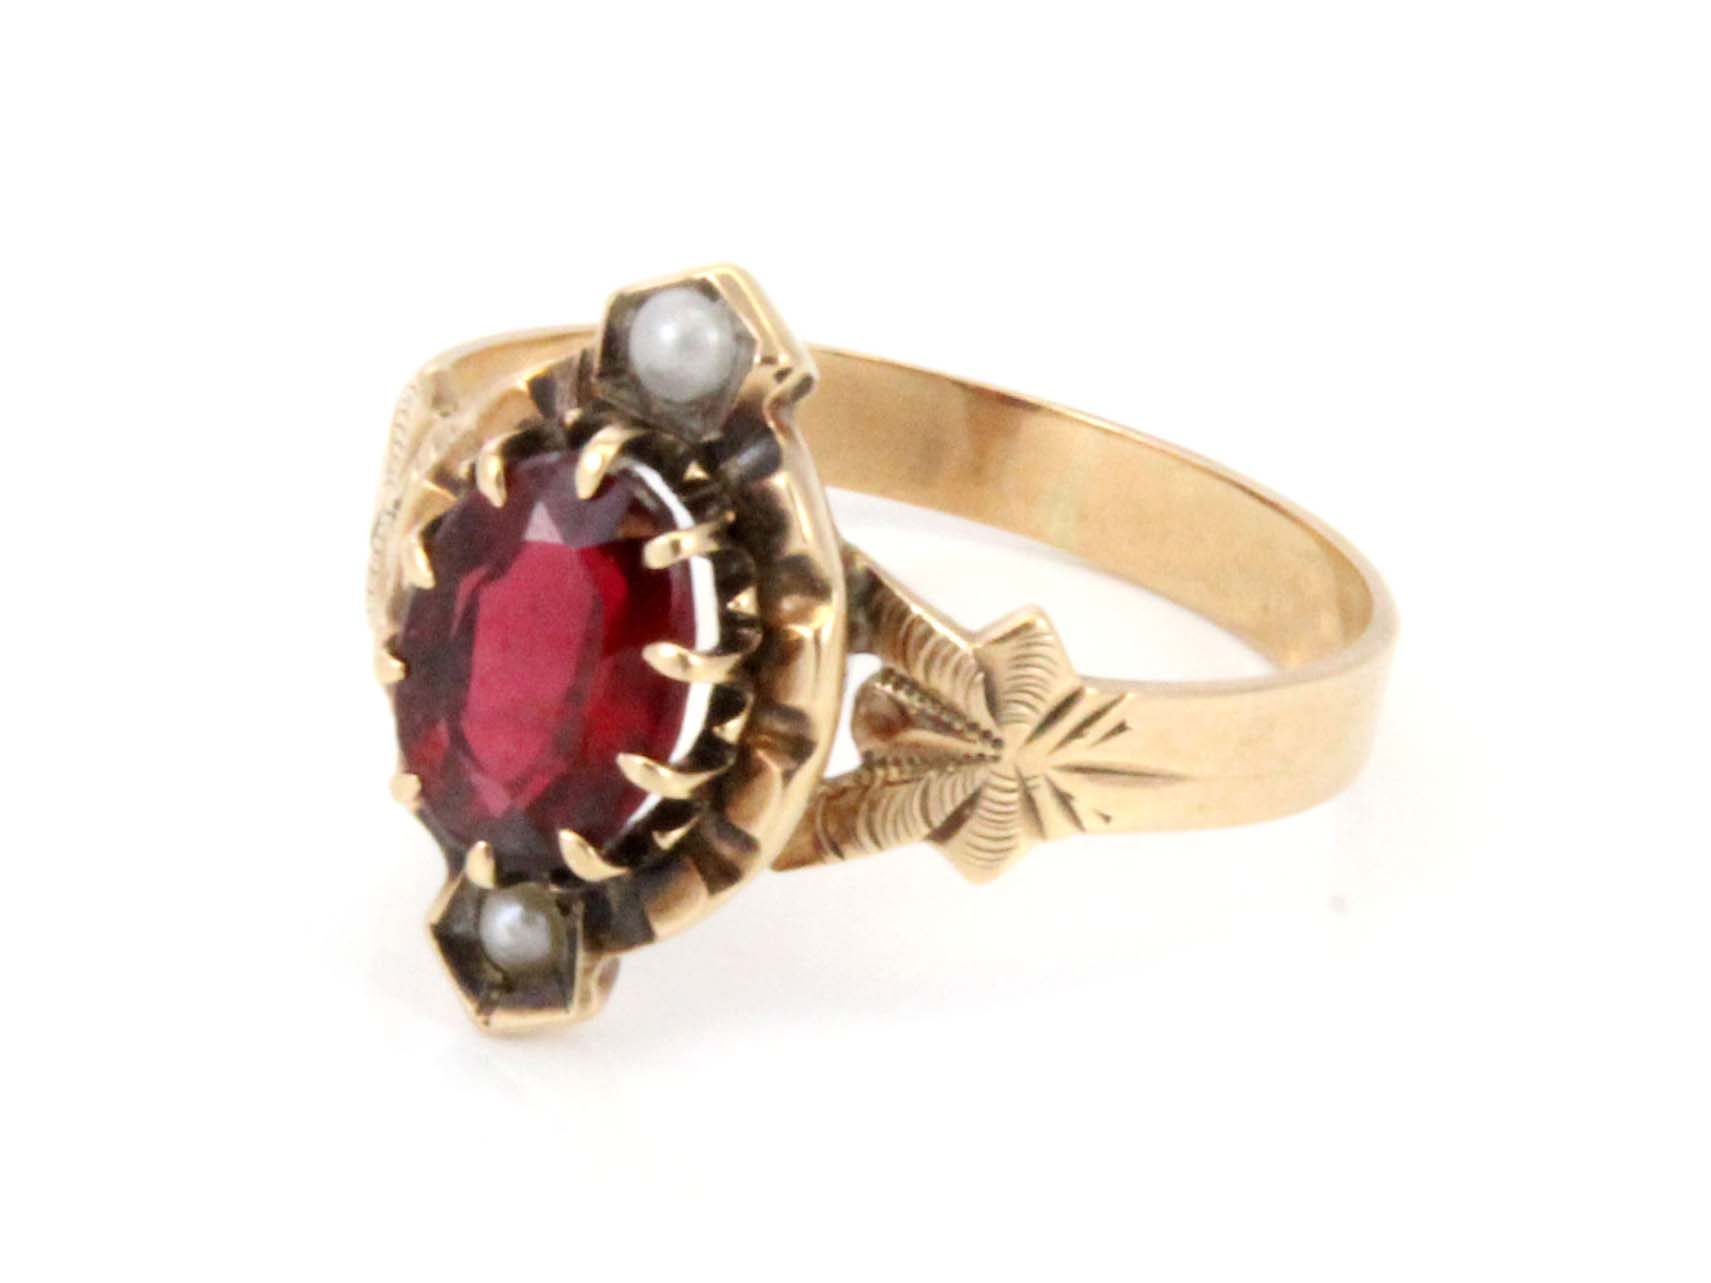 10K Antique Victorian Garnet Doublet Ruby Seed Pearl Ring